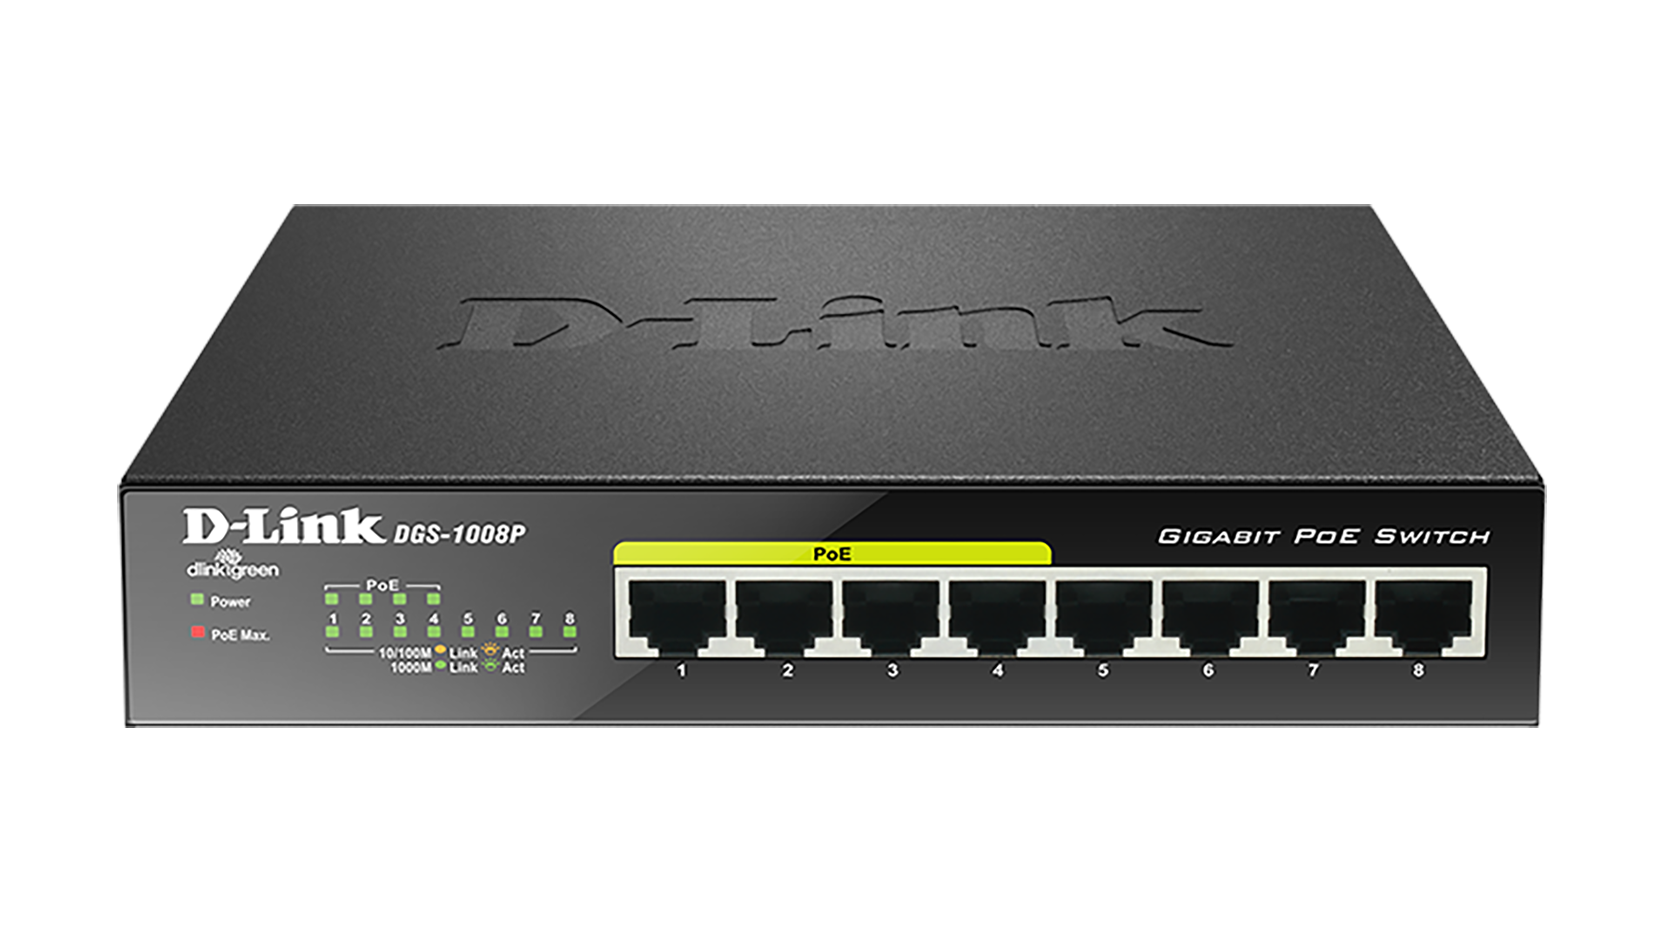 D-Link DGS-1008P/E 8-port 10/100/1000 Desktop Switch w/ 4 PoE Ports